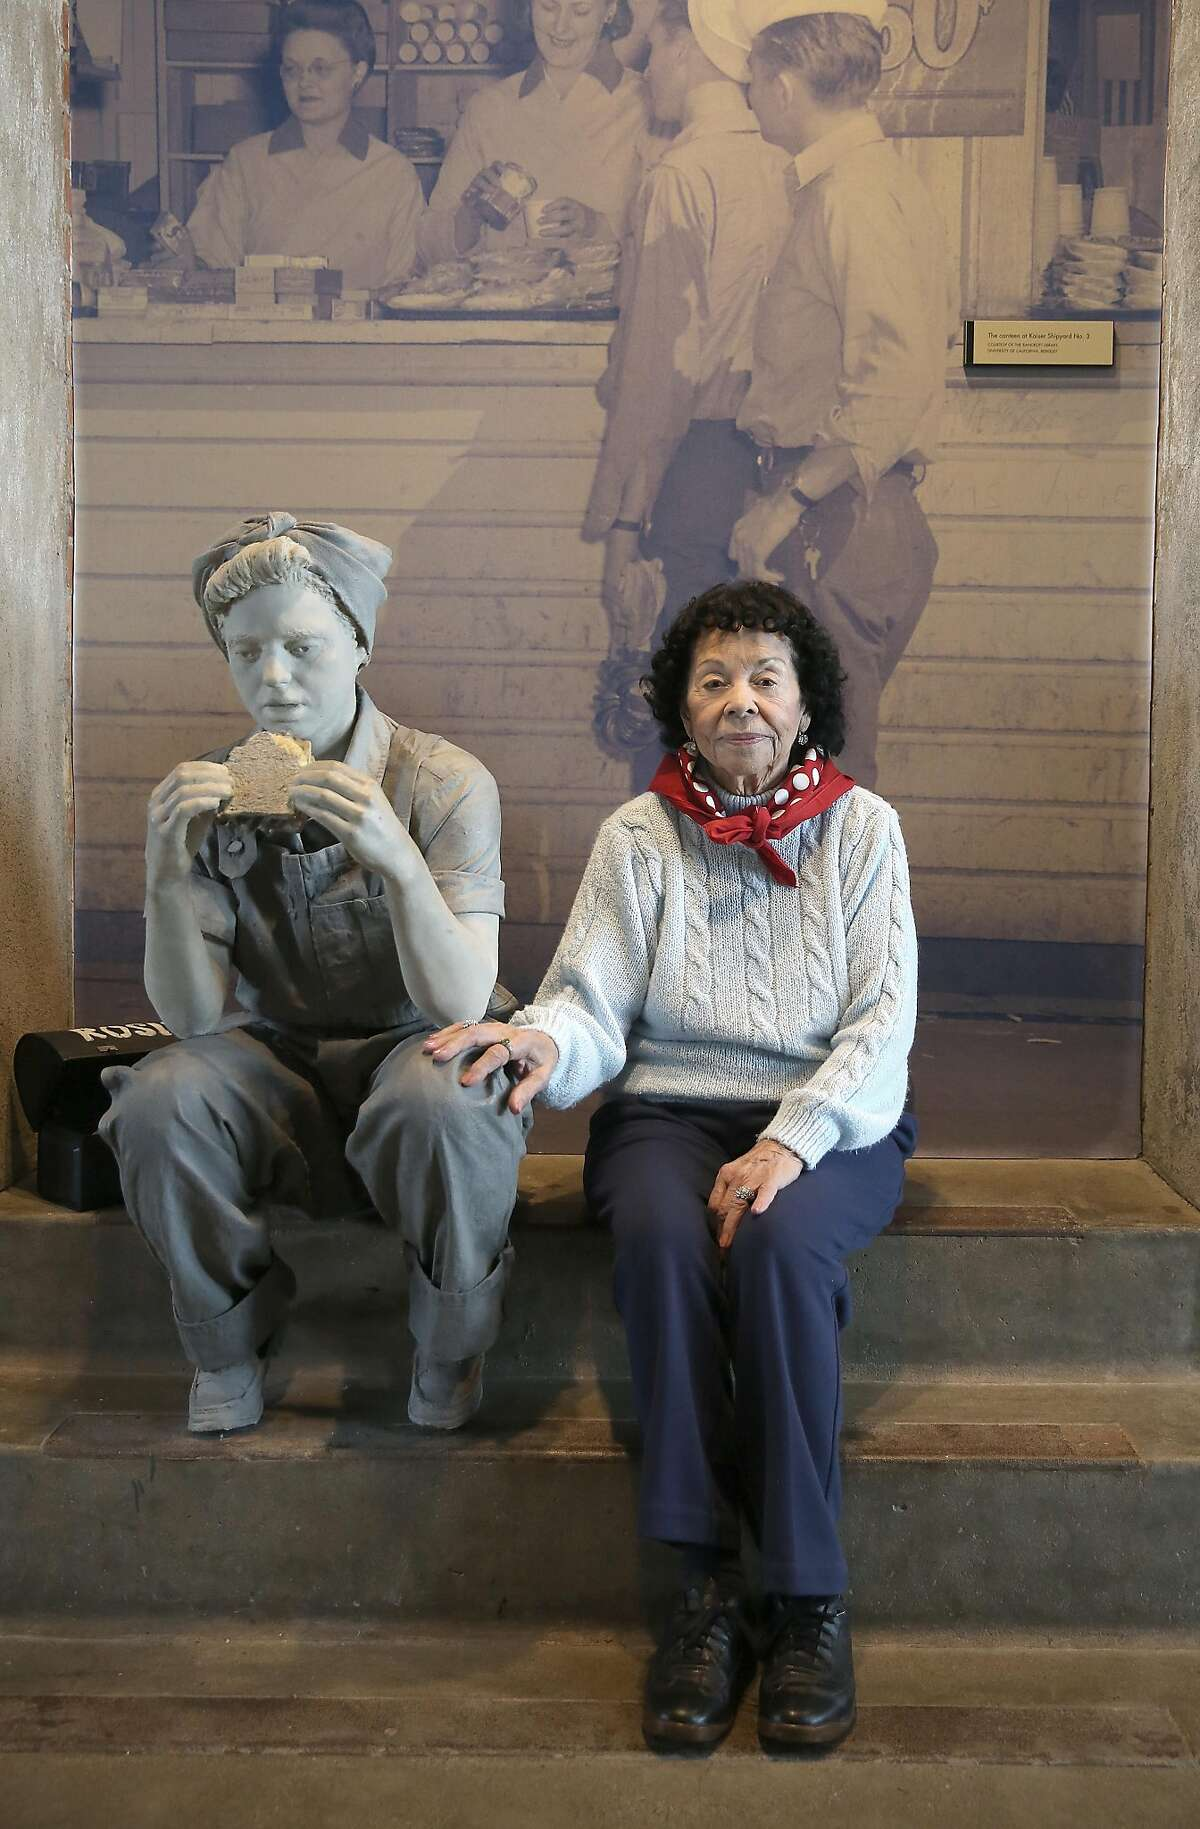 Welder Connie Rangel Gomez, 94 years old, at the Rosie the Riveter/World War II Home Front Visitor Education Center on Wednesday March 21, 2018, in Richmond, Calif., as the 2018 National Rosie the Riveter Day is recognized.